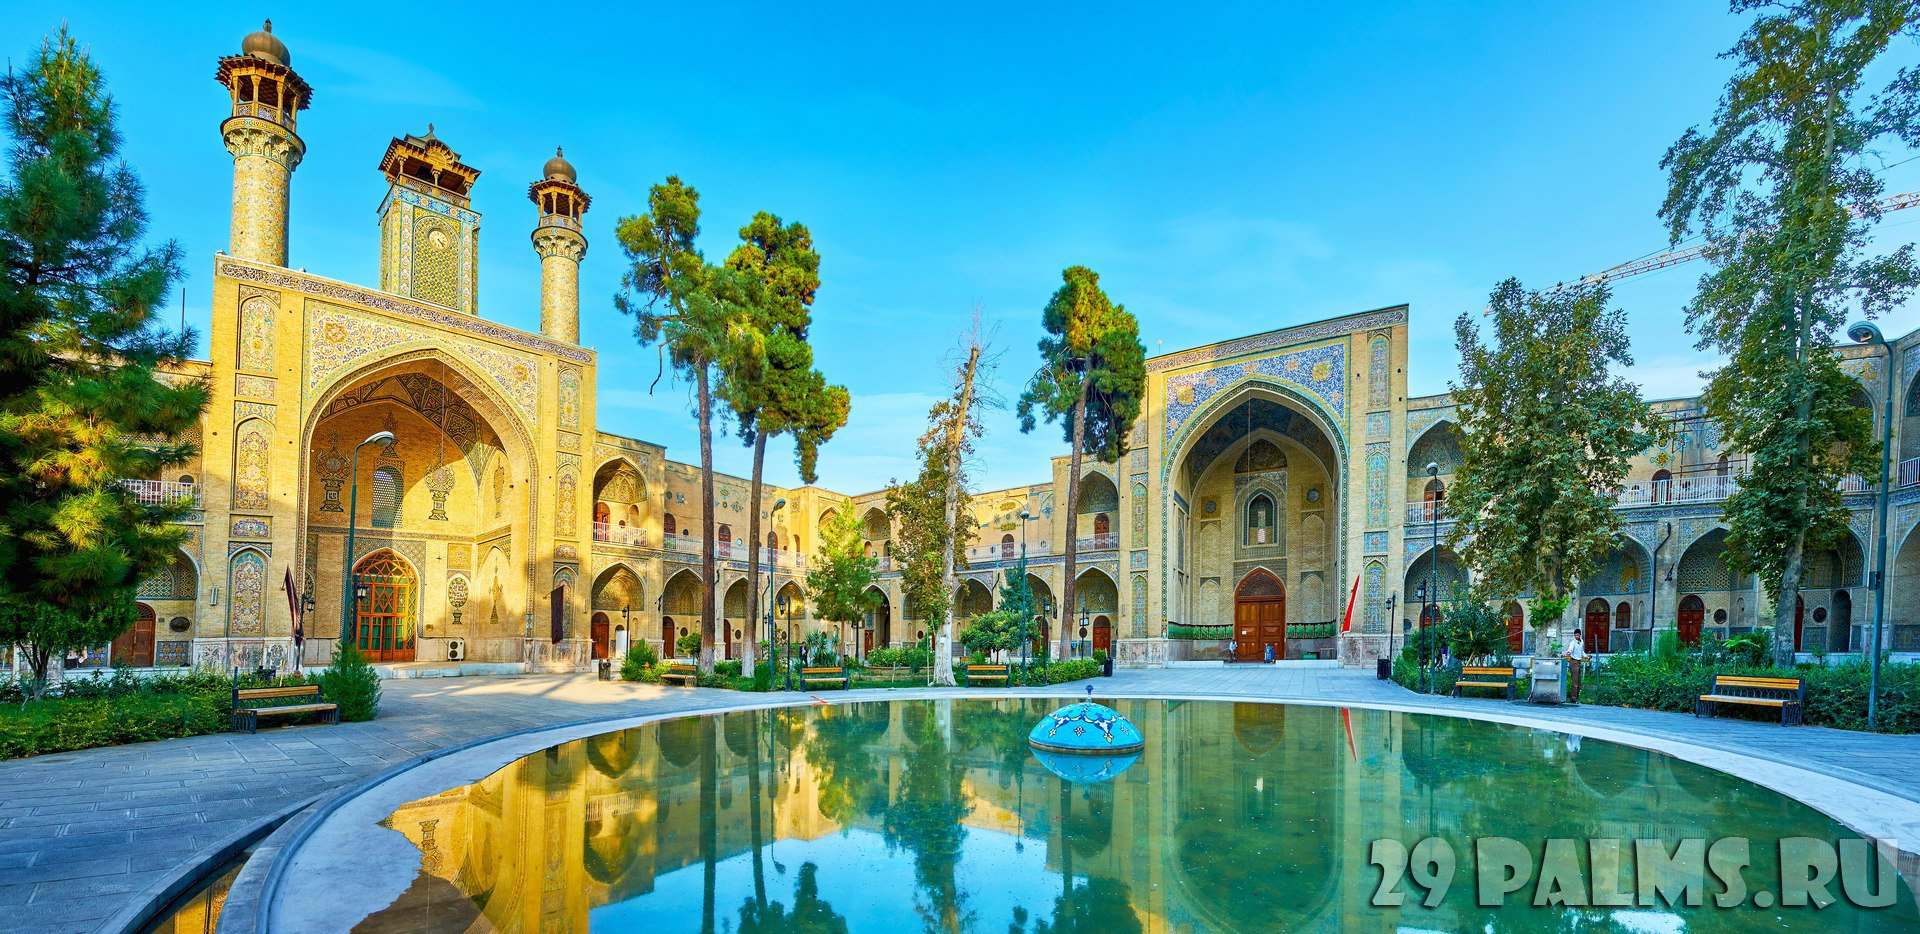 Иран. Тегеран. Мечеть Сепахсалар. The fountain in Sepahsalar mosque, Tehran. Фото efesenko - Depositphotos